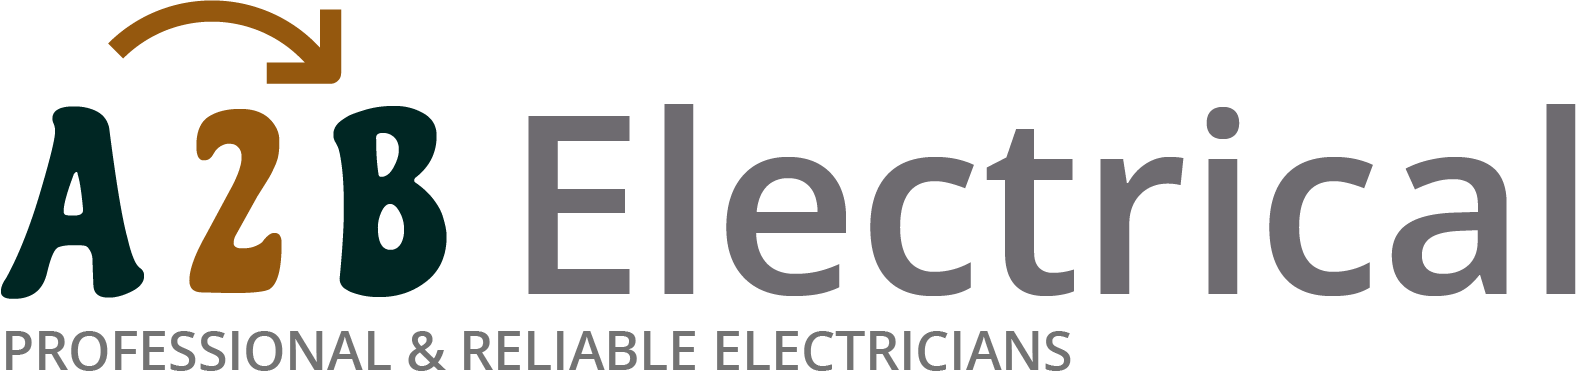 If you have electrical wiring problems in Bermondsey, we can provide an electrician to have a look for you.